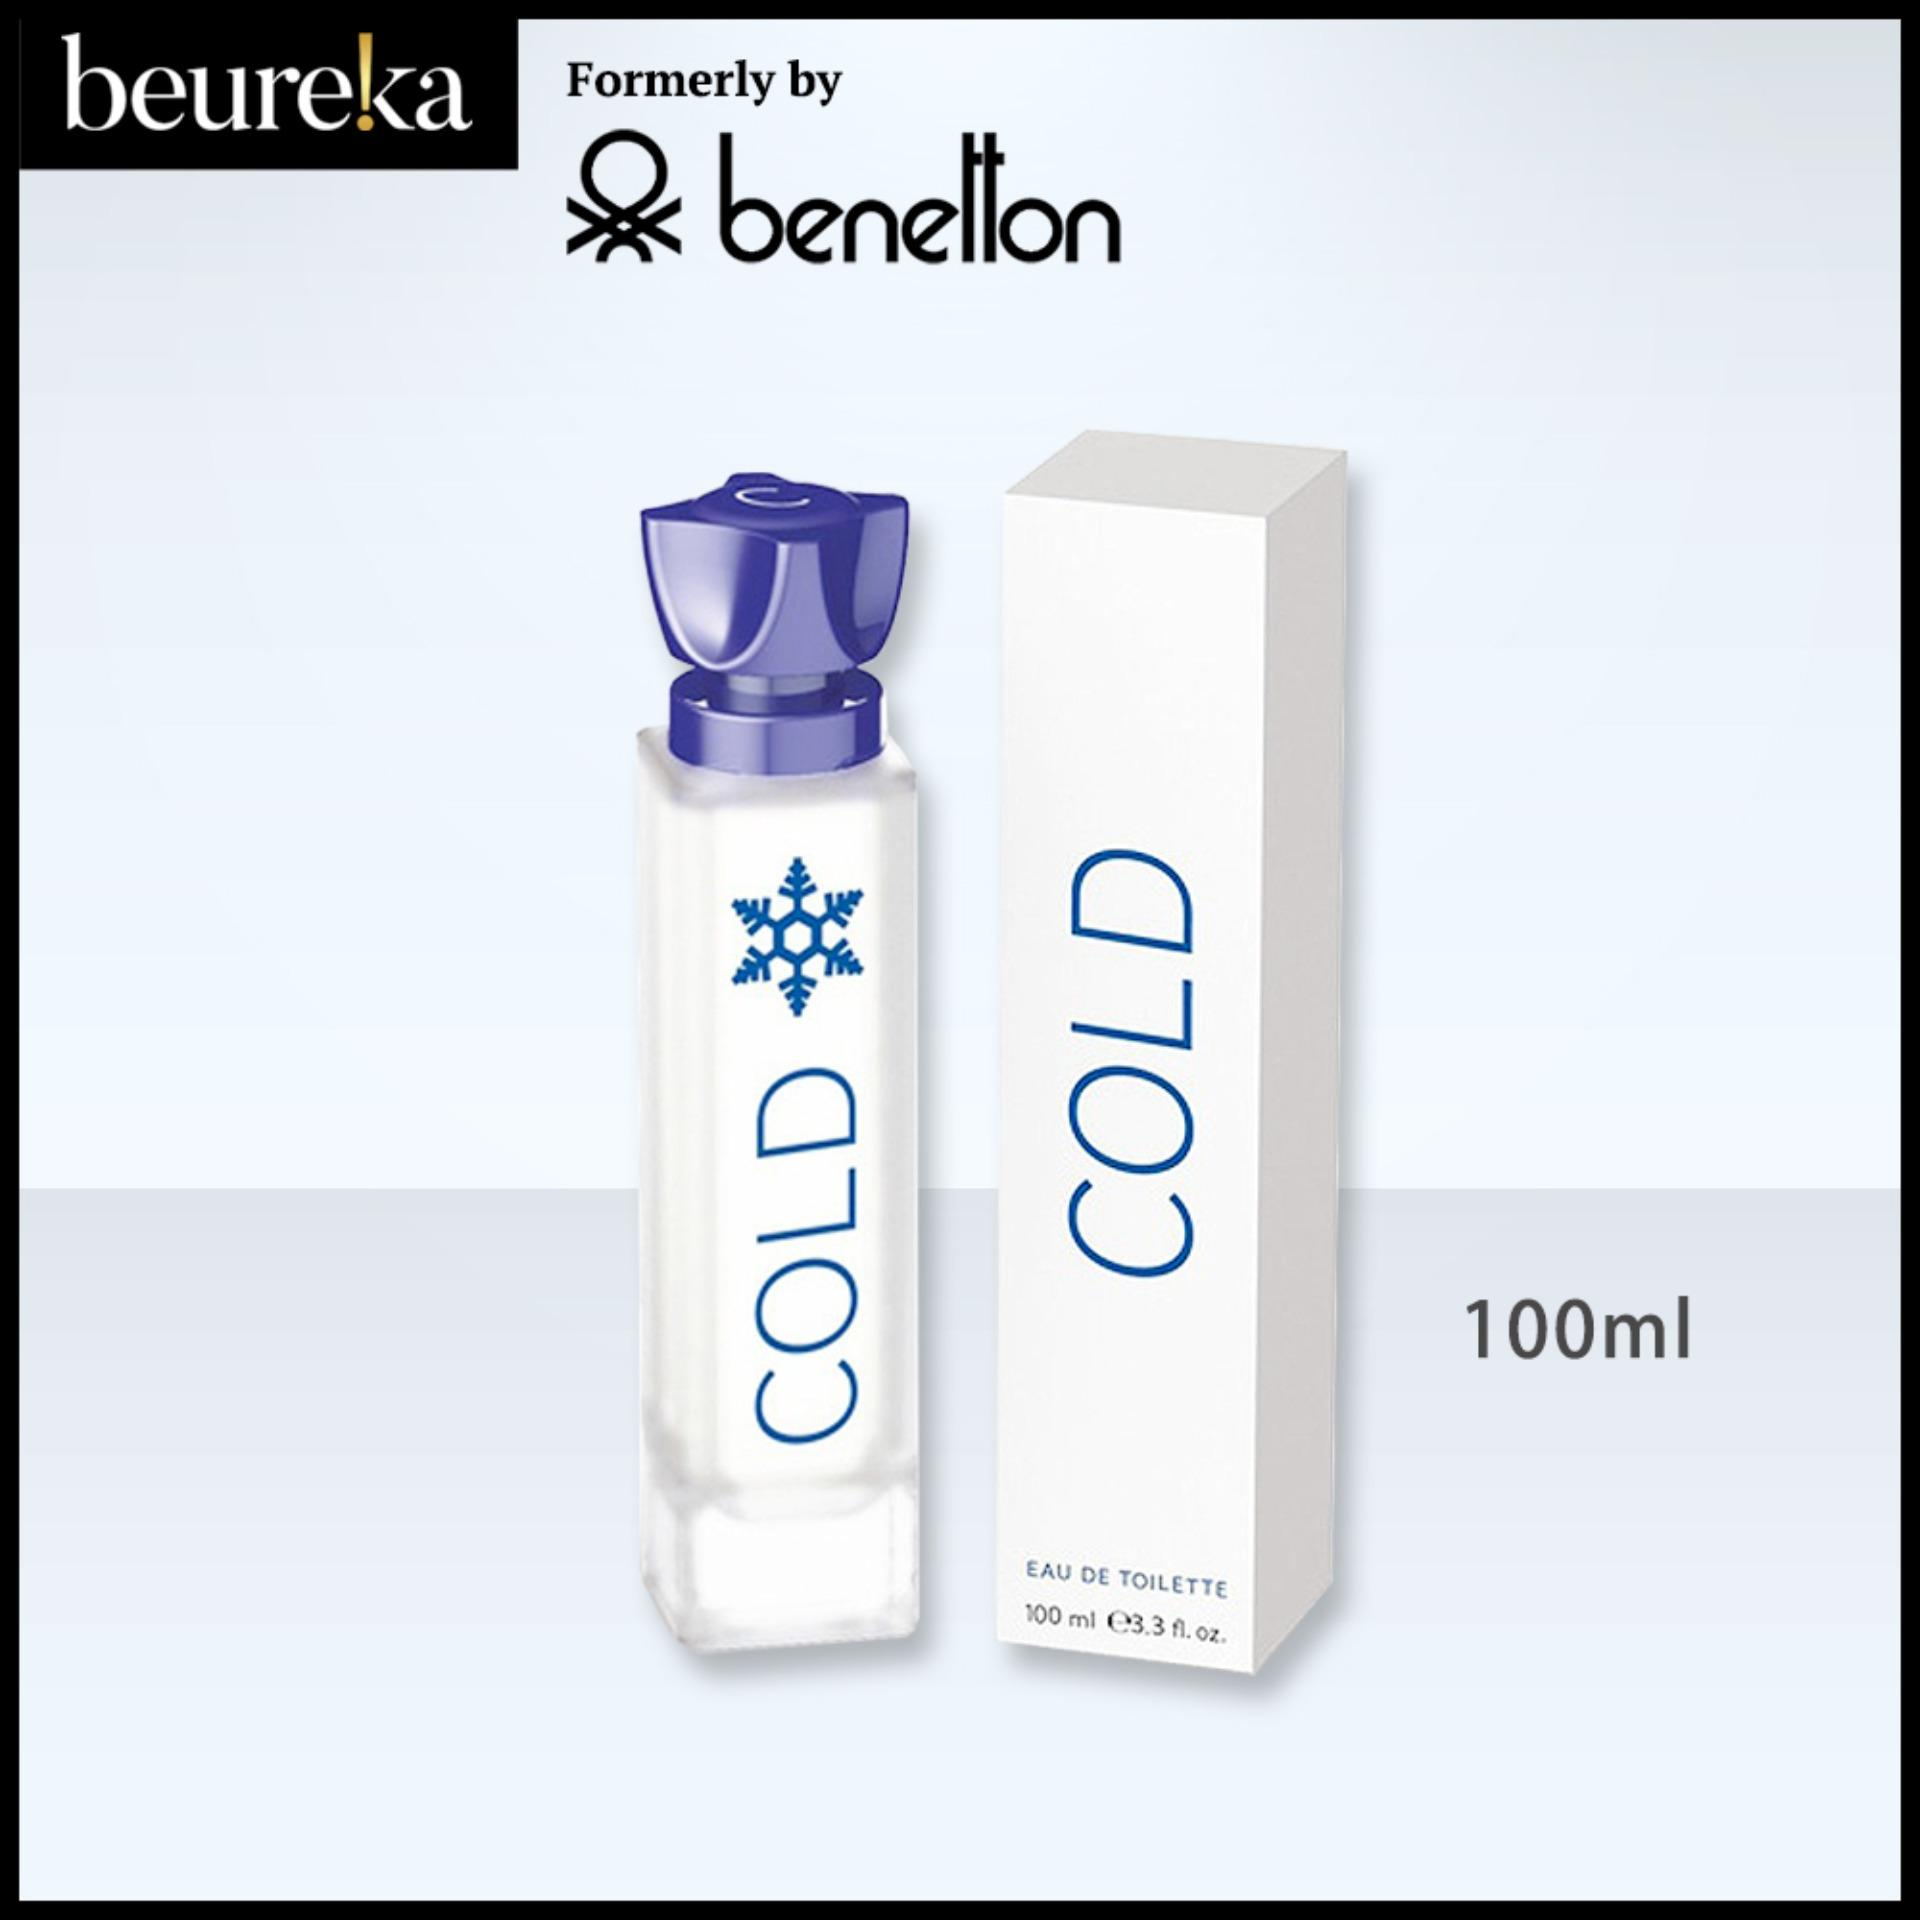 Cold (previously By Benetton) Edt For Men 100ml - Beureka [luxury Beauty (perfume) - Fragrances For Men Brand New Original Packaging 100% Authentic].